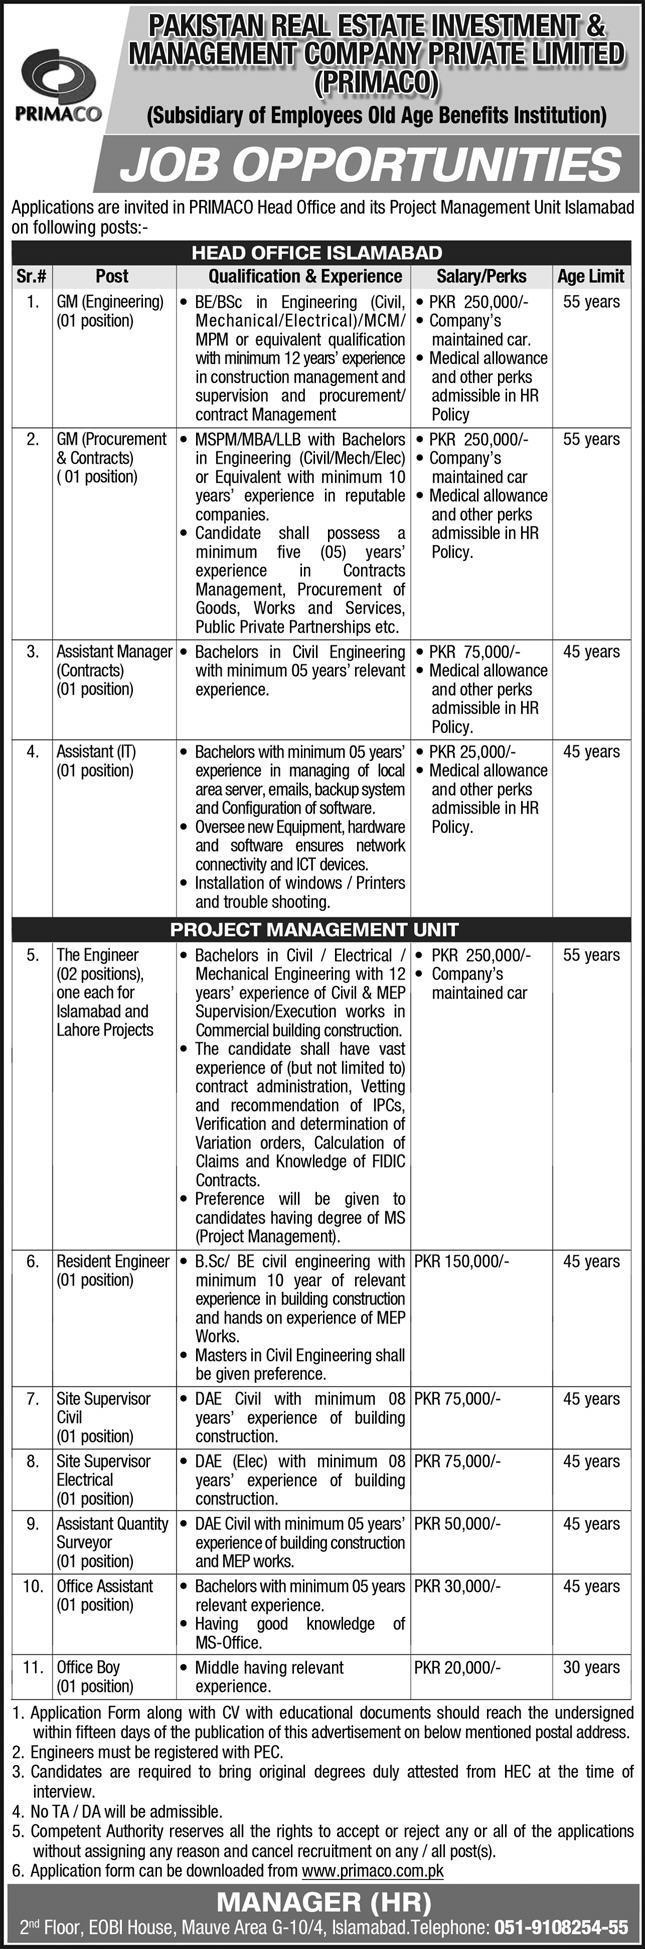 Pakistan Real Estate Investment & Management Company PRIMACO Jobs 2021